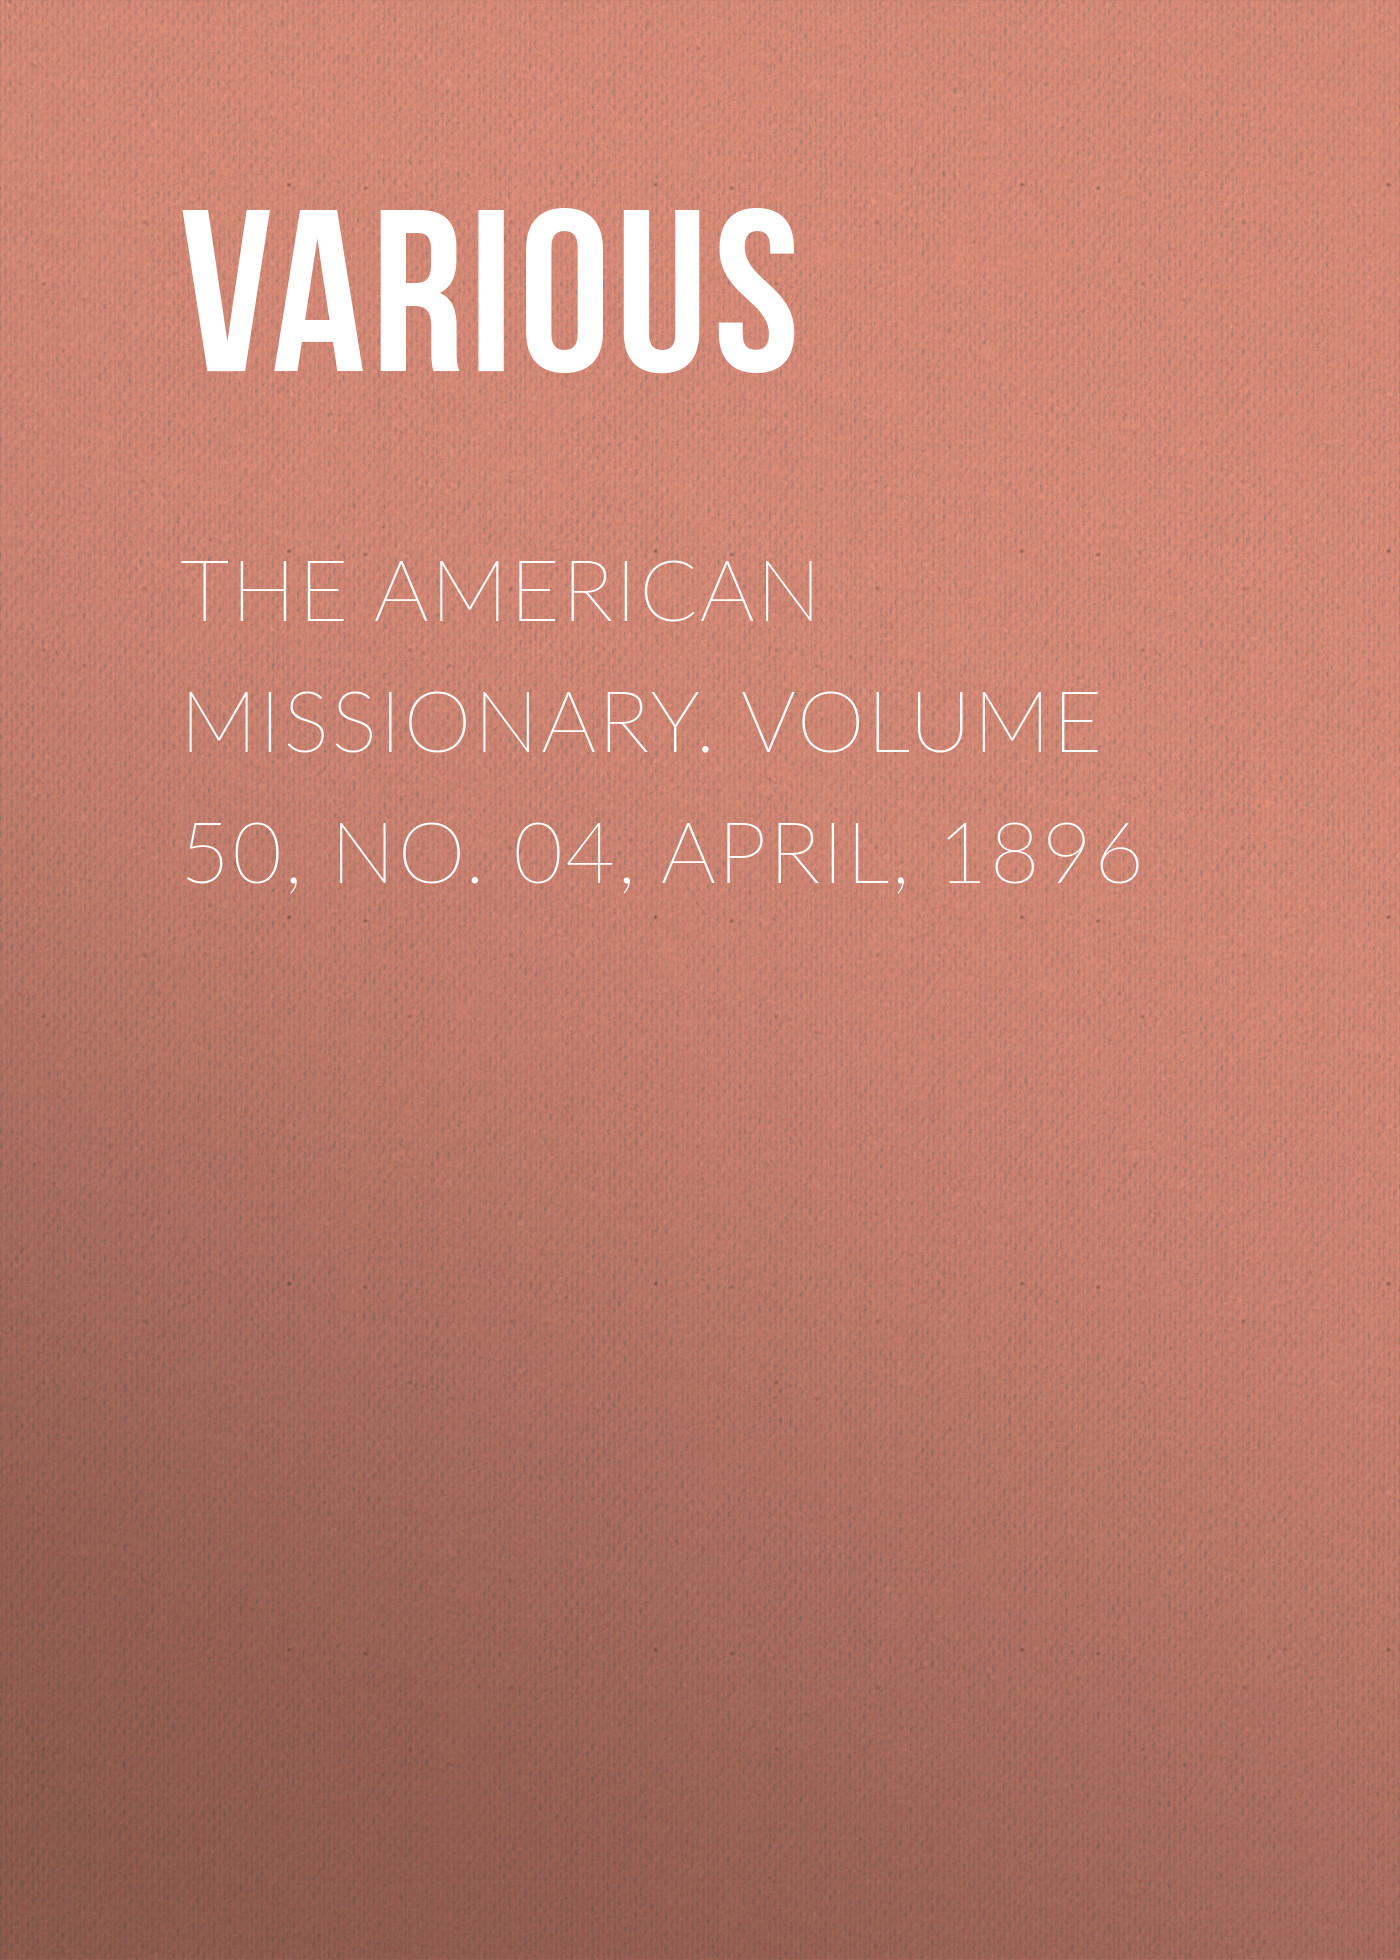 Various The American Missionary. Volume 50, No. 04, April, 1896